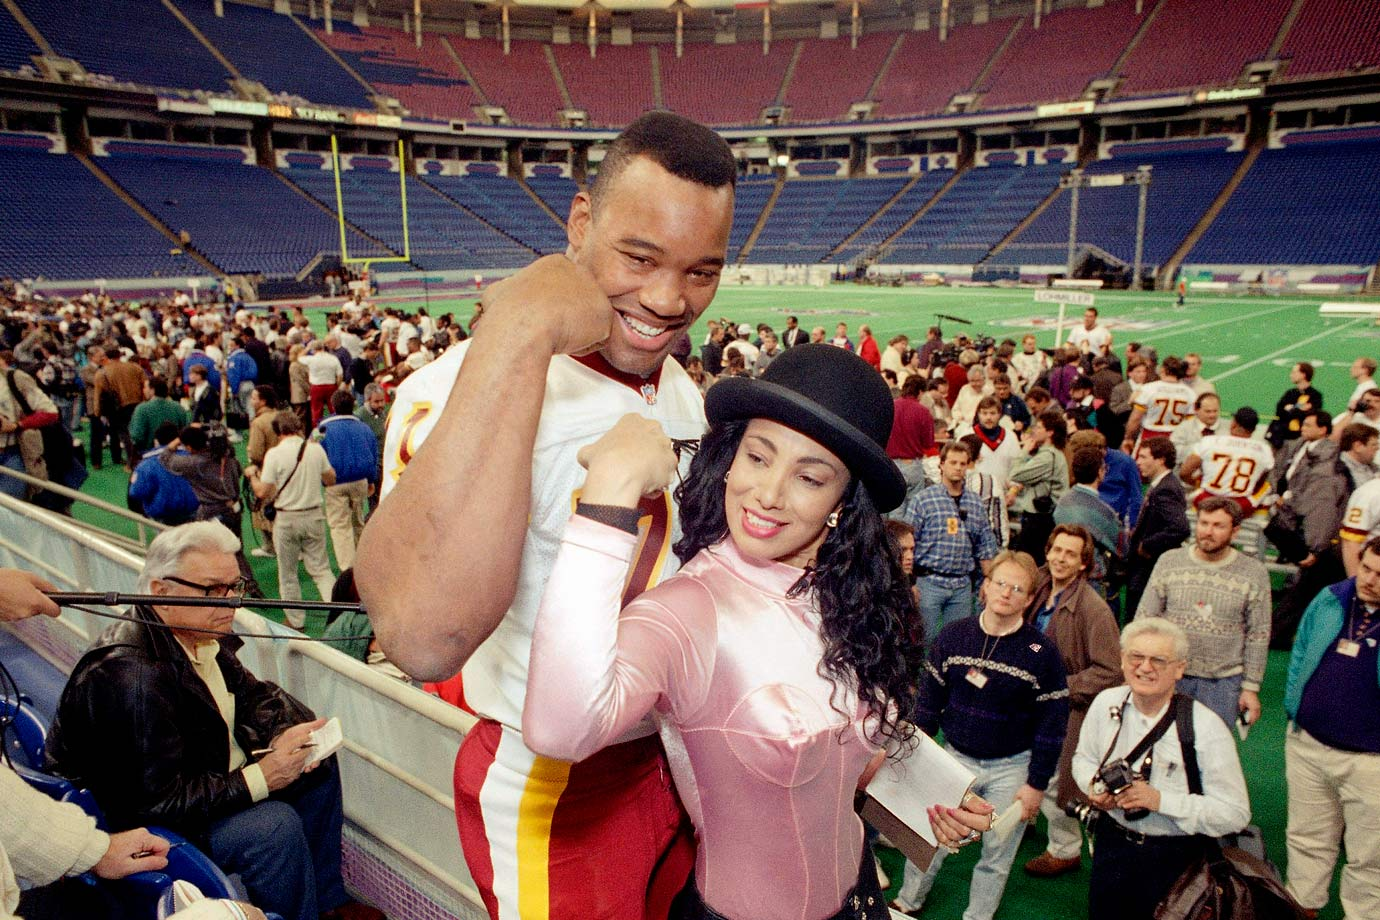 Redskins defensive end Charles Mann compares muscles with MTV's Julie Brown at Super Bowl XXVI Media Day in Minneapolis.